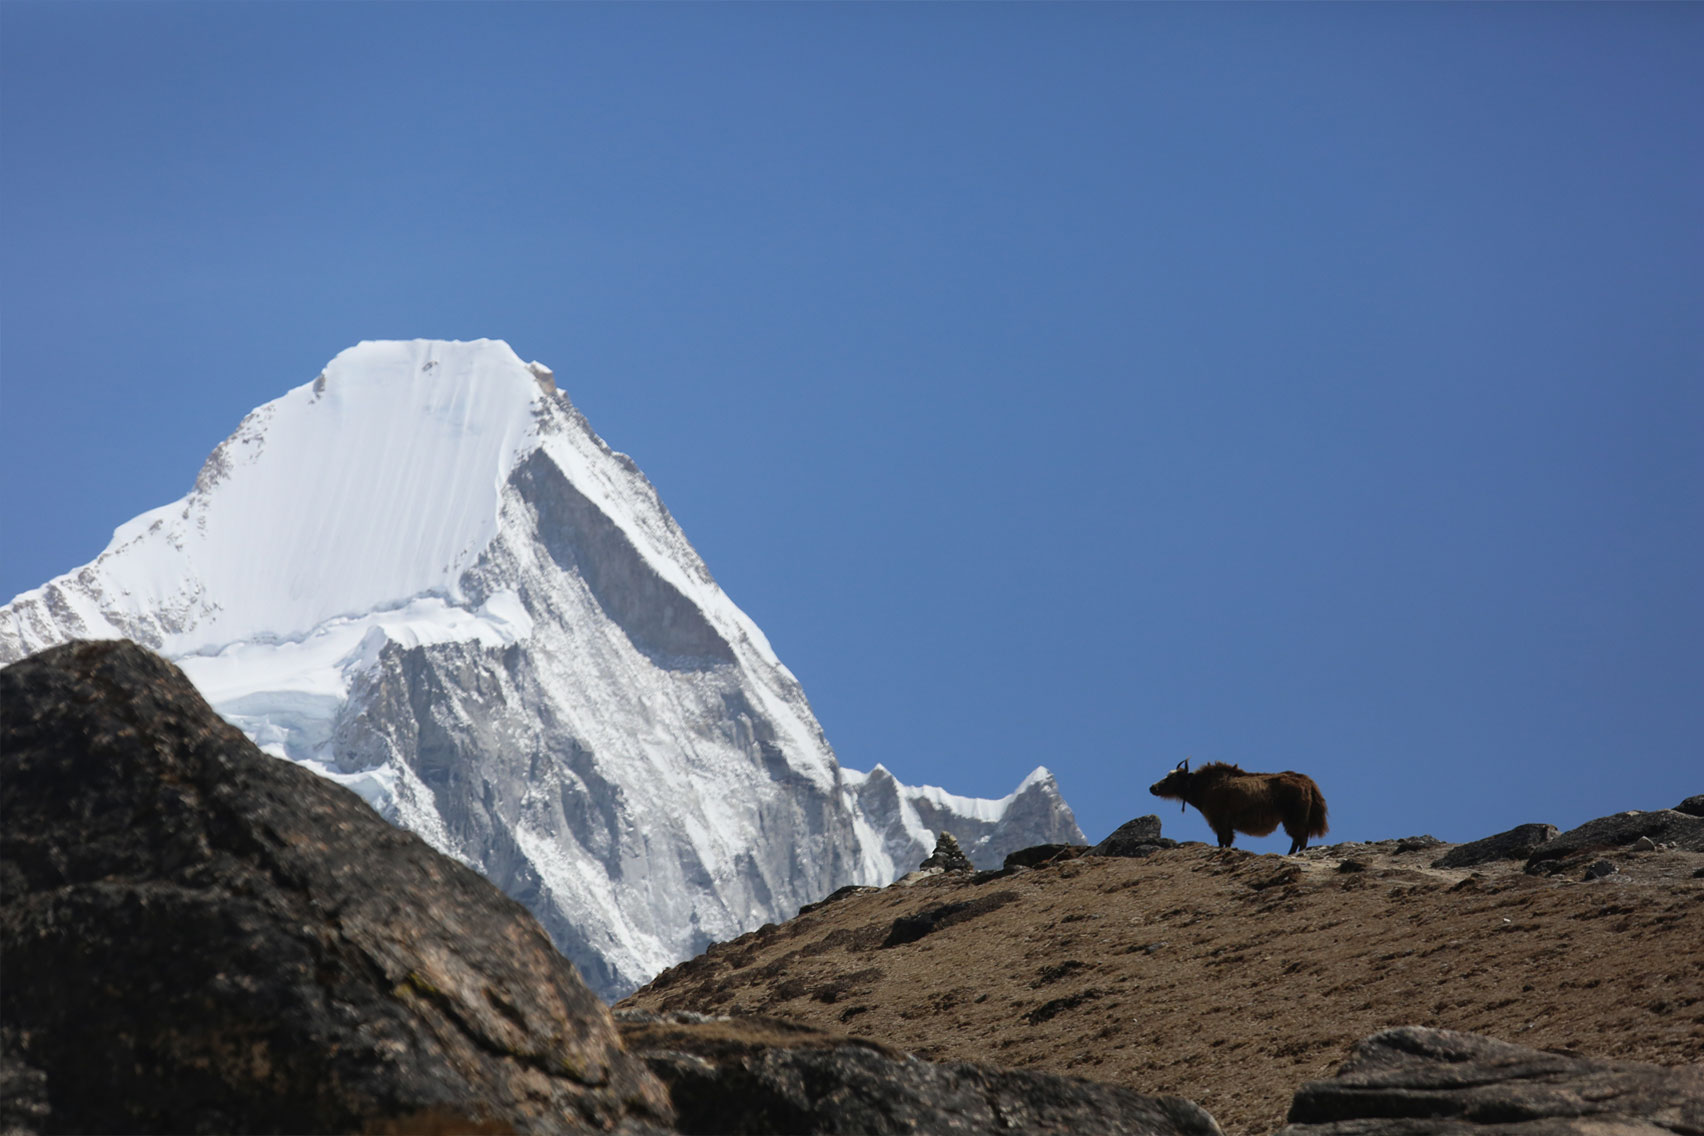 Day 11: Hike up to Kalapathar (5545m) and trek down to Lobuche (7 hrs, 4980m)